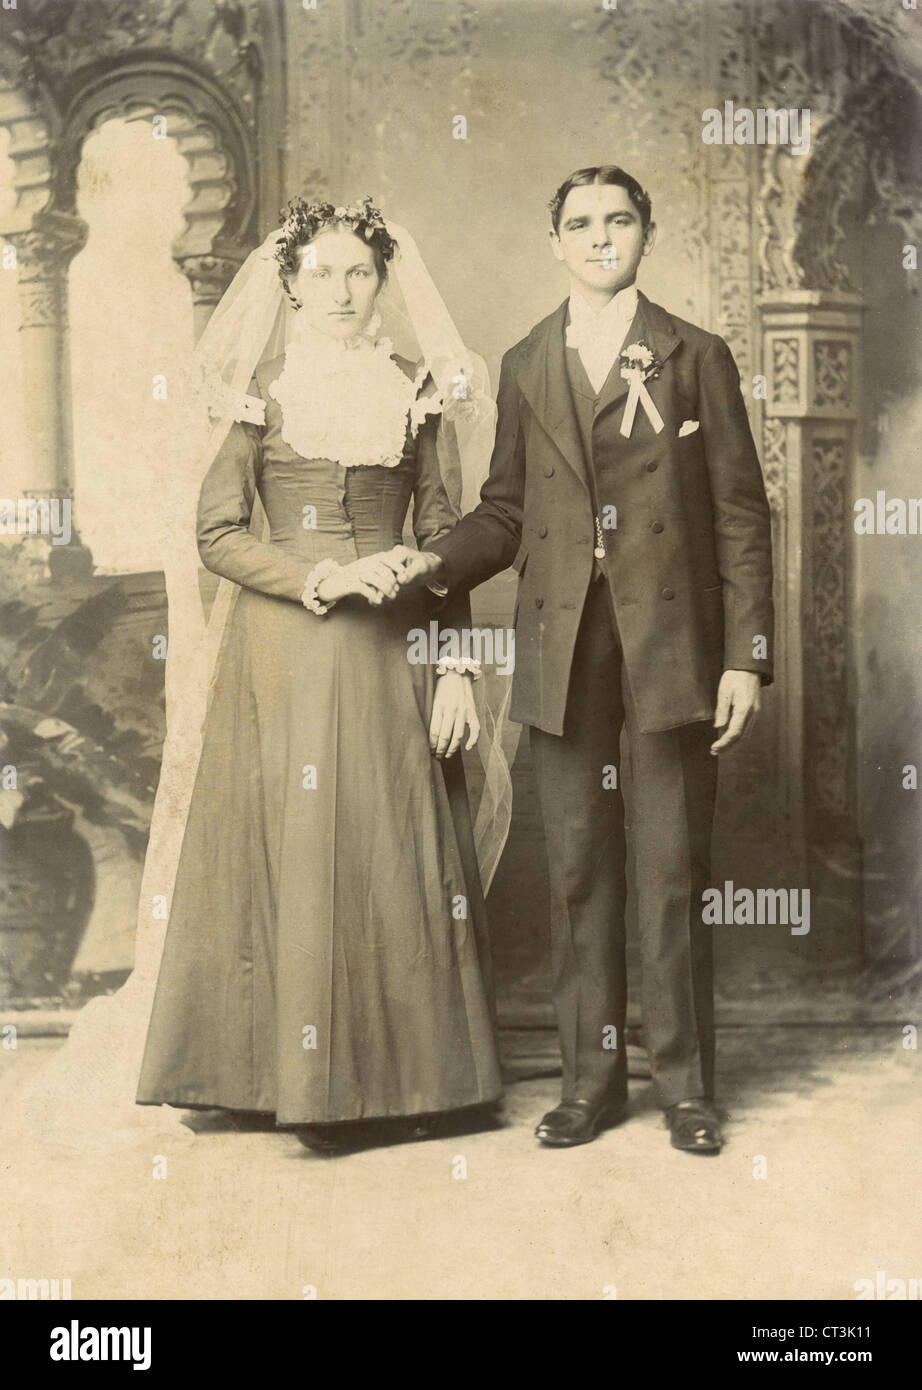 Wedding Couple Portrait Usa Circa Stockfotos  Wedding Couple Portrait Usa Circa Bilder  Alamy